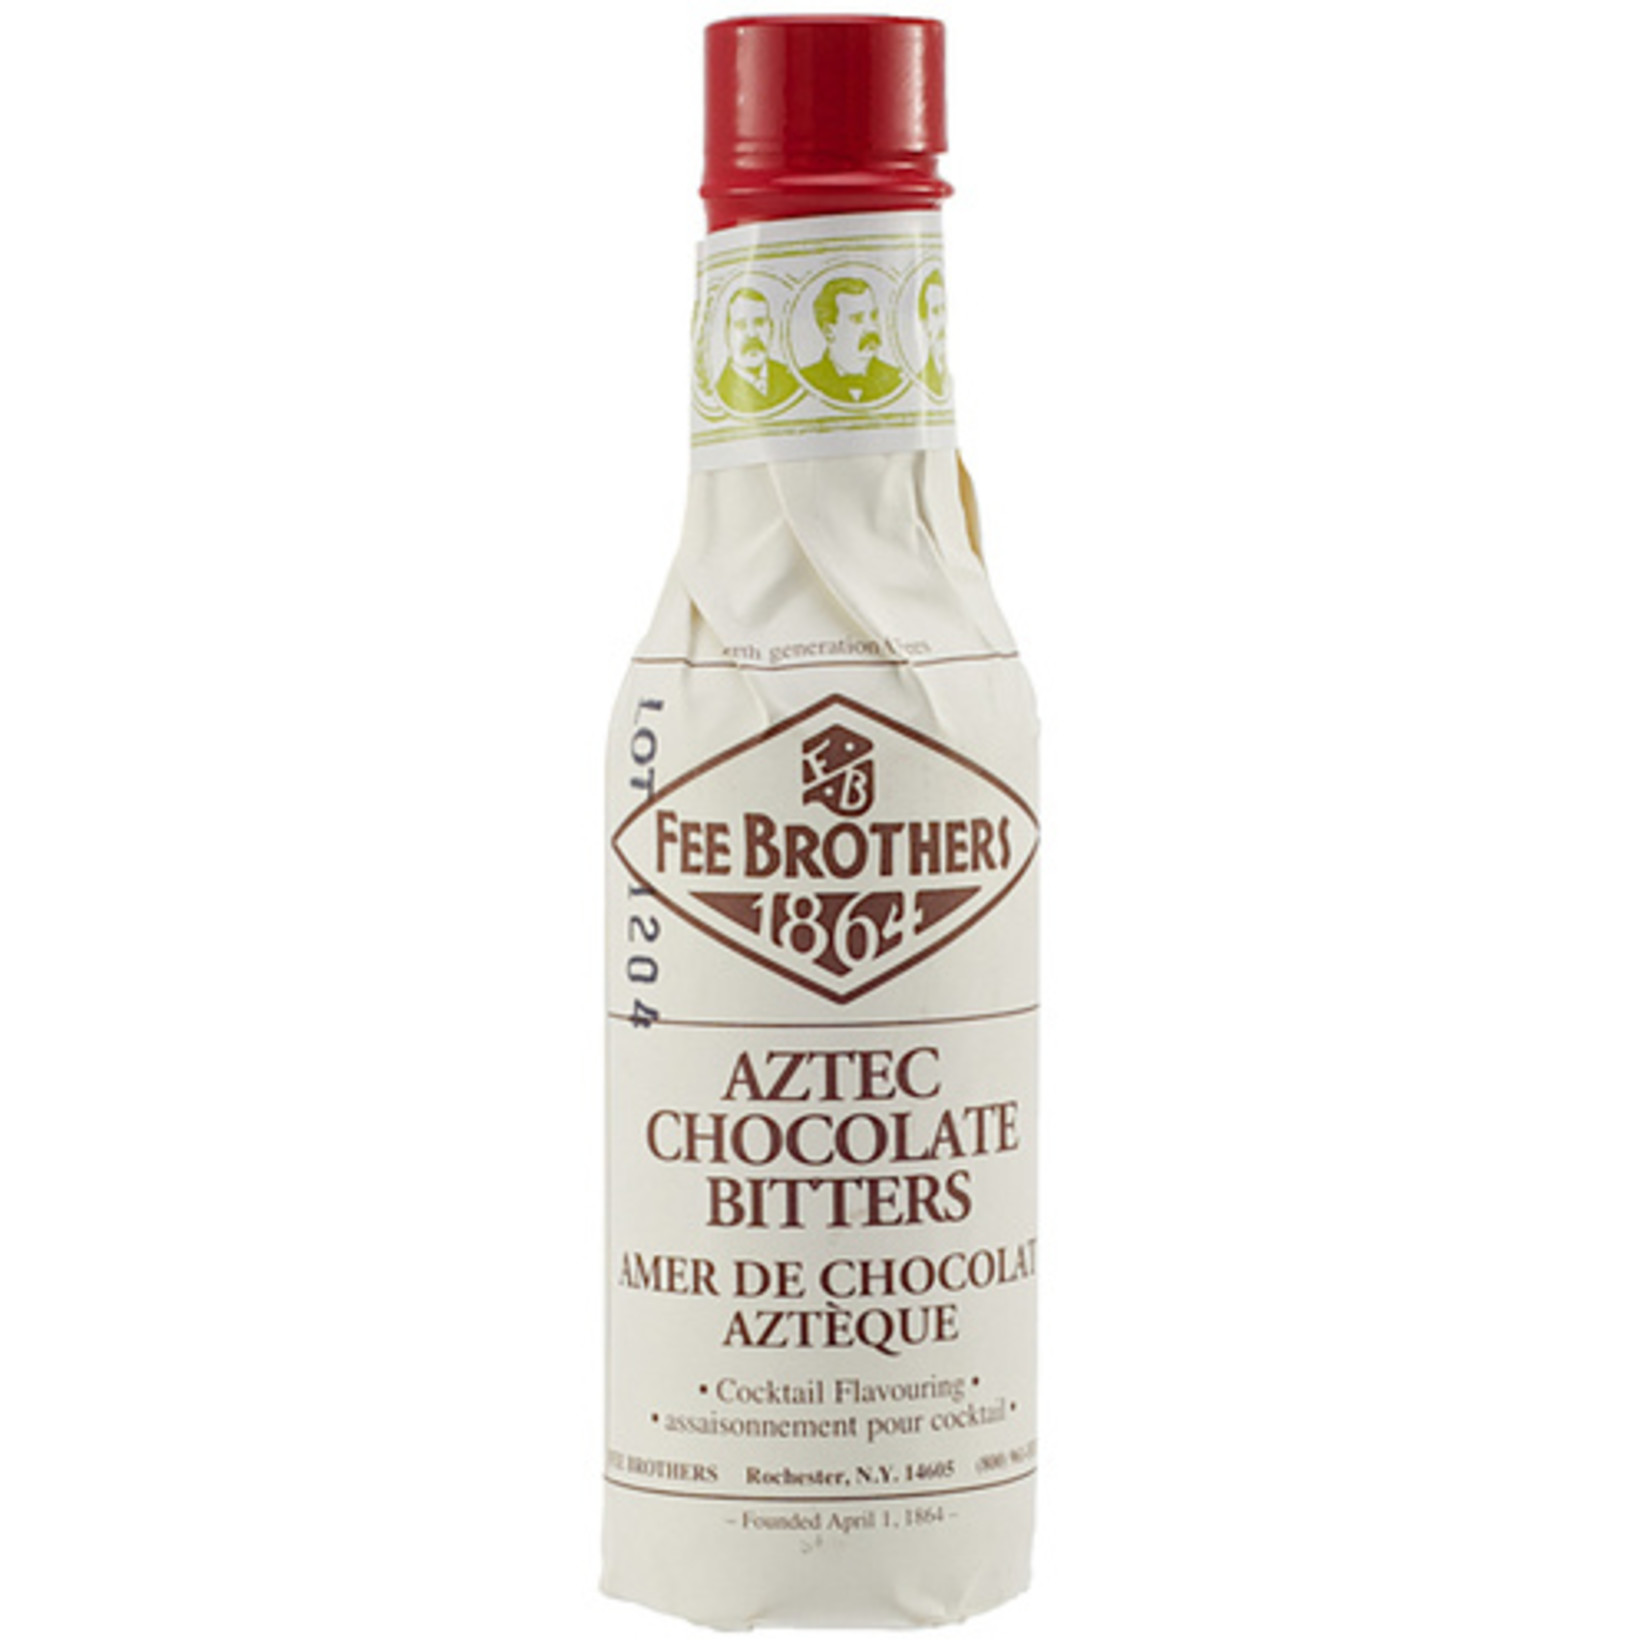 Fee Brothers Fee Brothers Bitters Aztec Chocolate